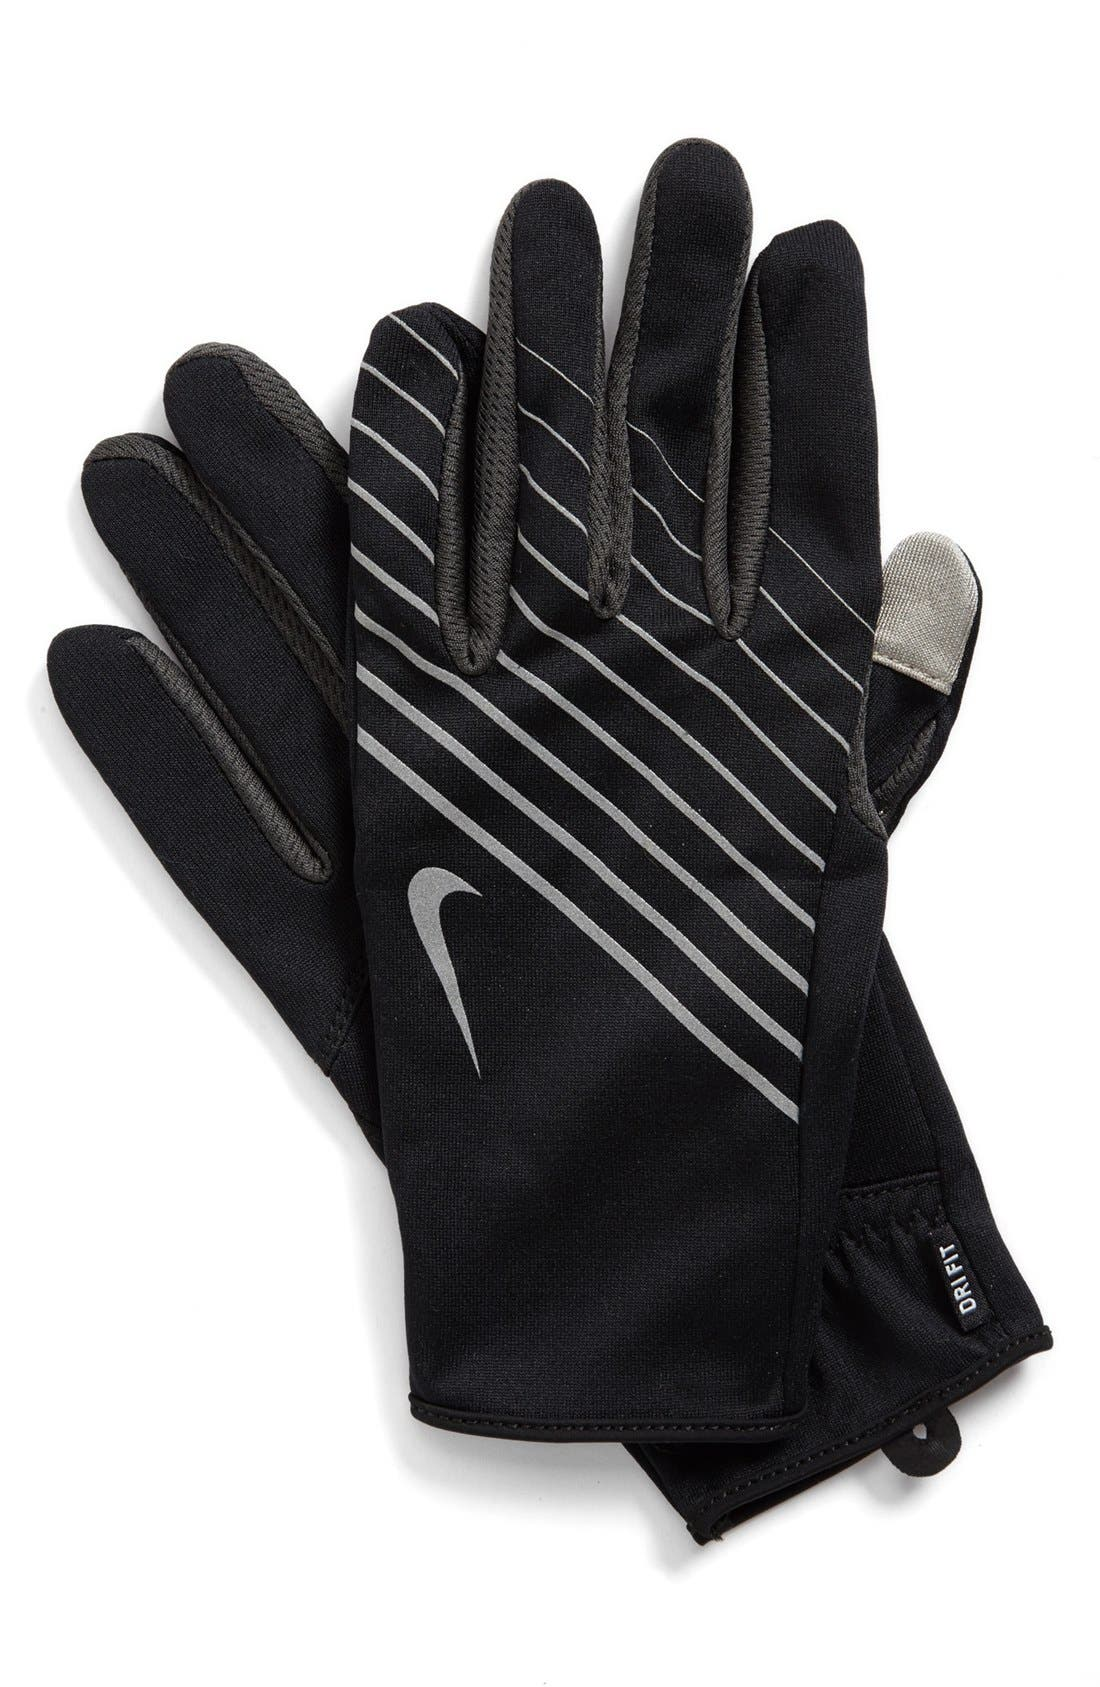 'Tech' Dri-FIT Running Gloves,                             Main thumbnail 1, color,                             Black/ Anthracite